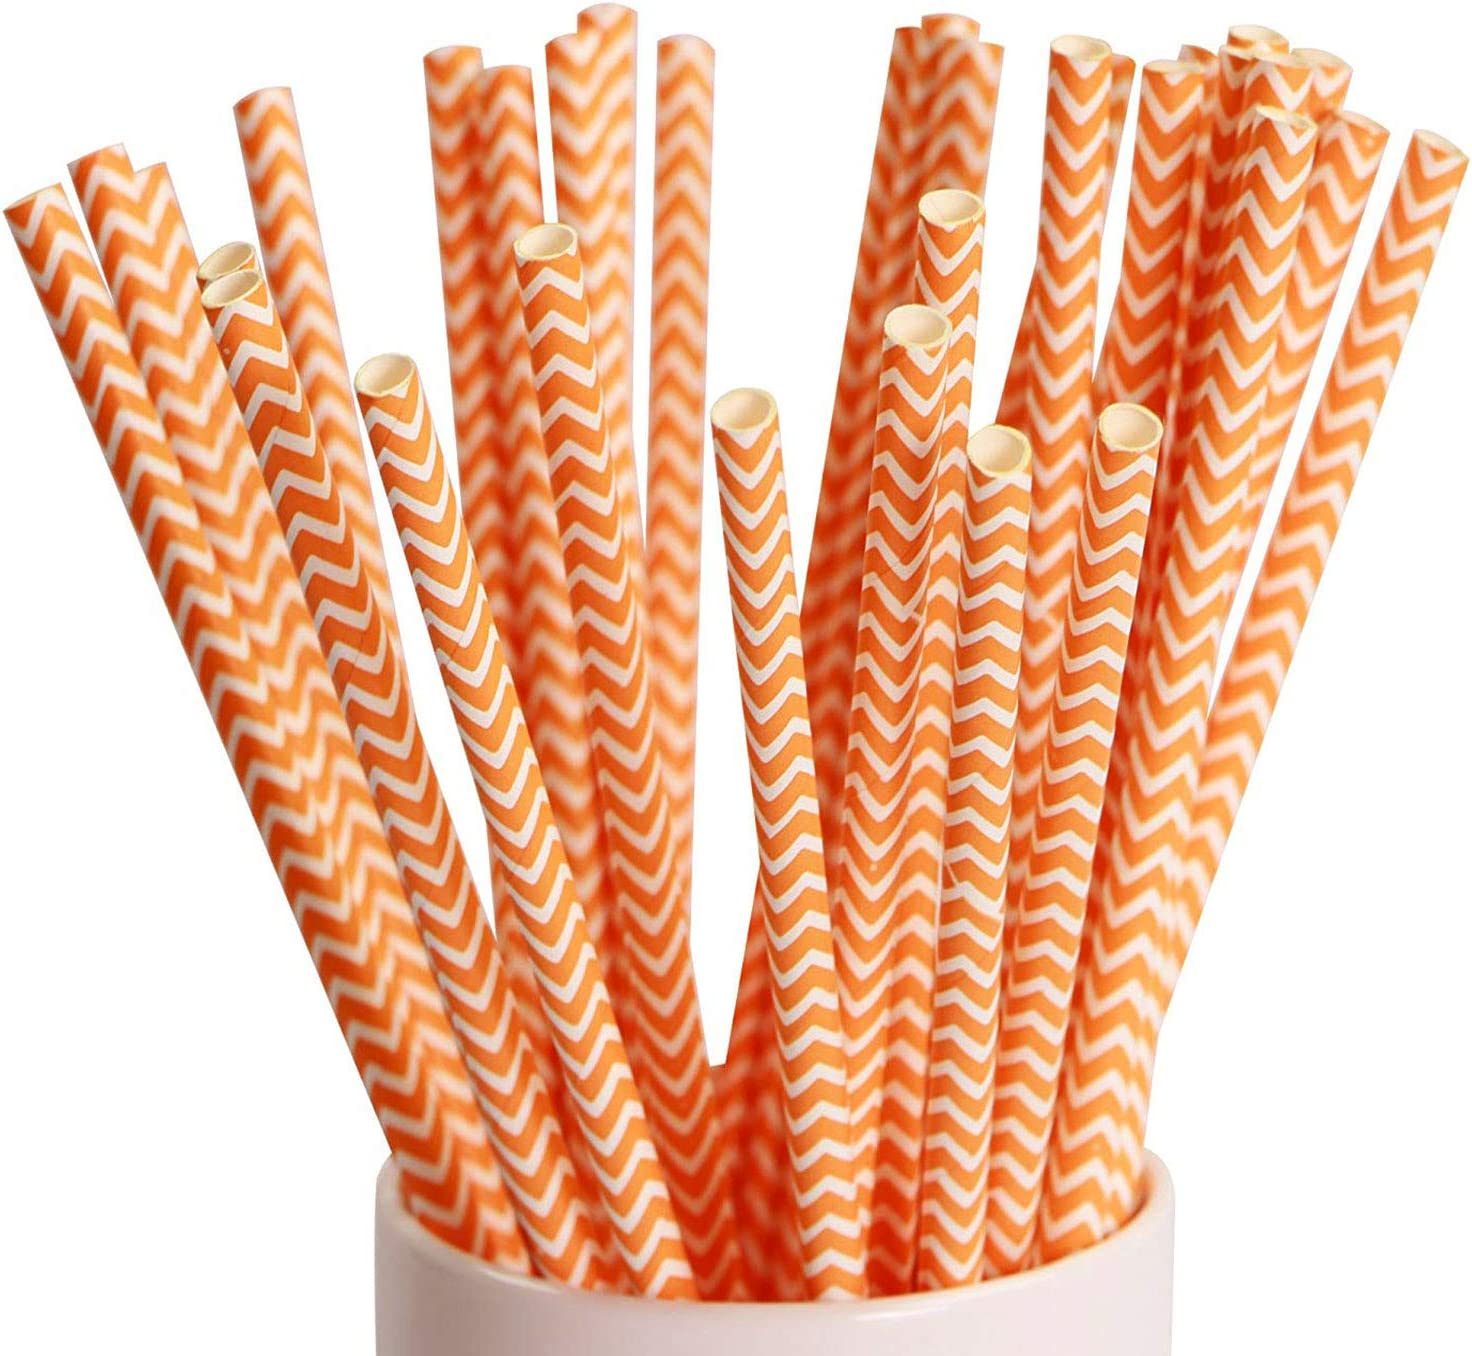 Webake 100 Pack Chevron Paper Straws Wave Patterned Drinking Straws Bulk 7.75 Inch Disposable Biodegradable Restaurant Supplies for Thanksgiving Table Decor Orange Striped